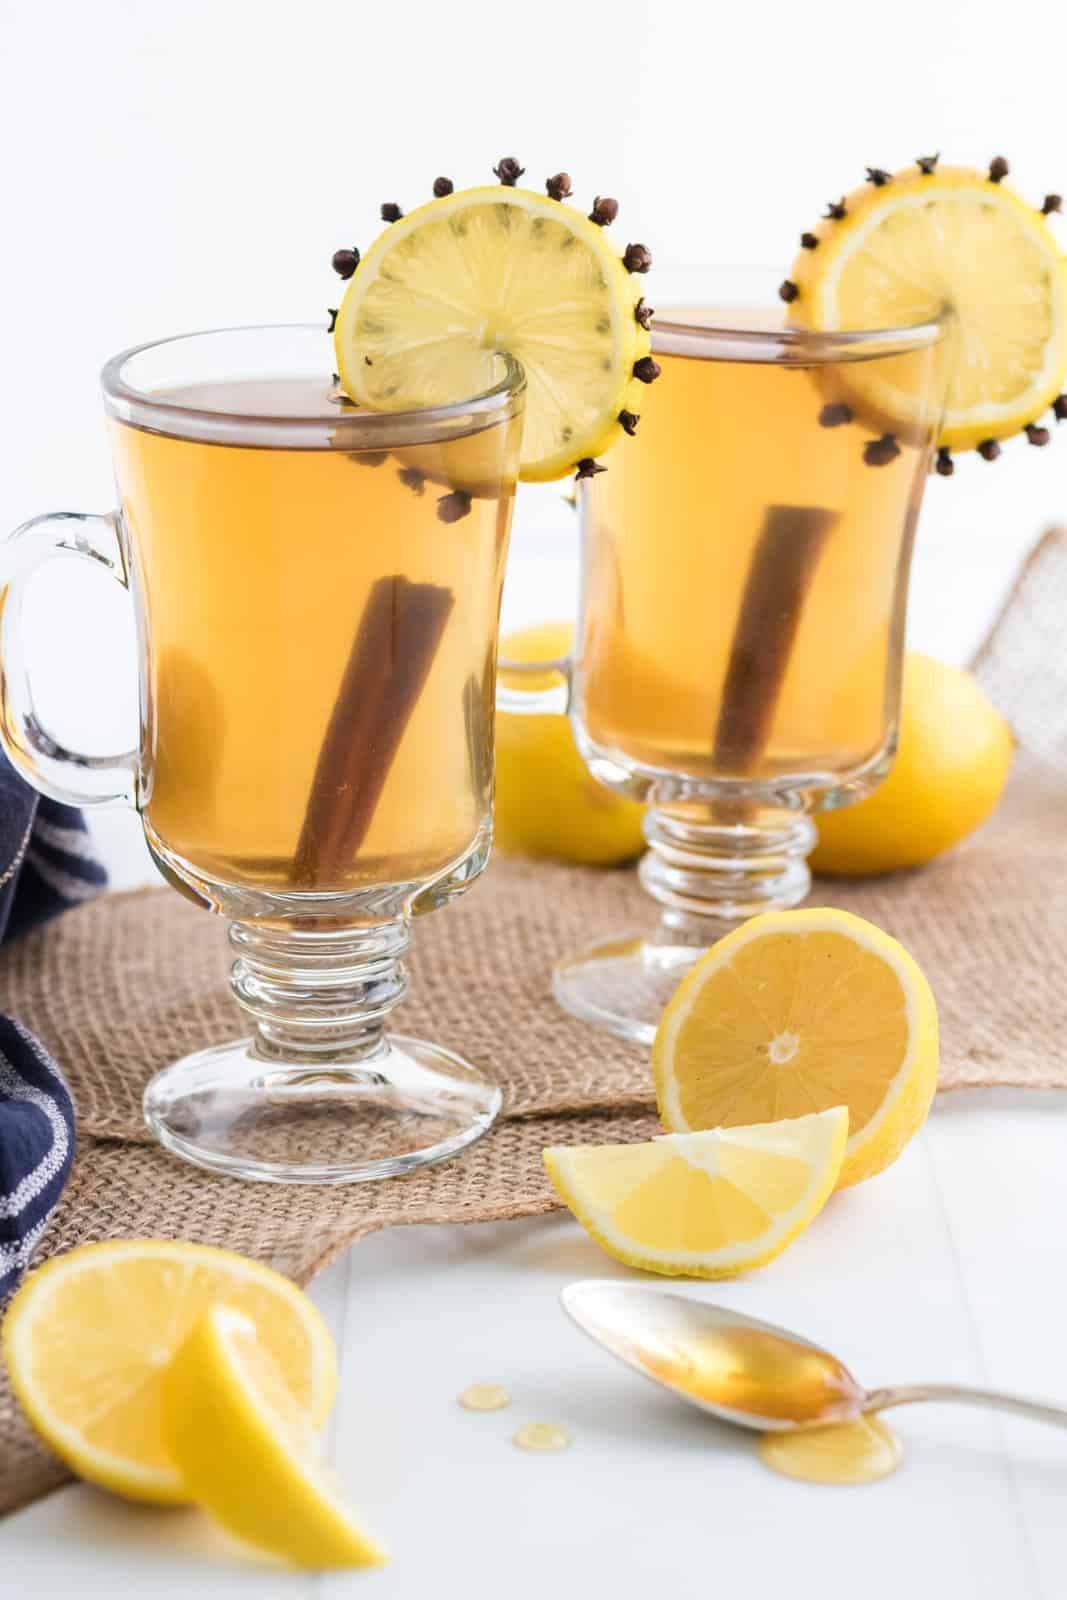 Hot Toddy Recipe in handled glasses with lemon slices and cinnamon sticks.